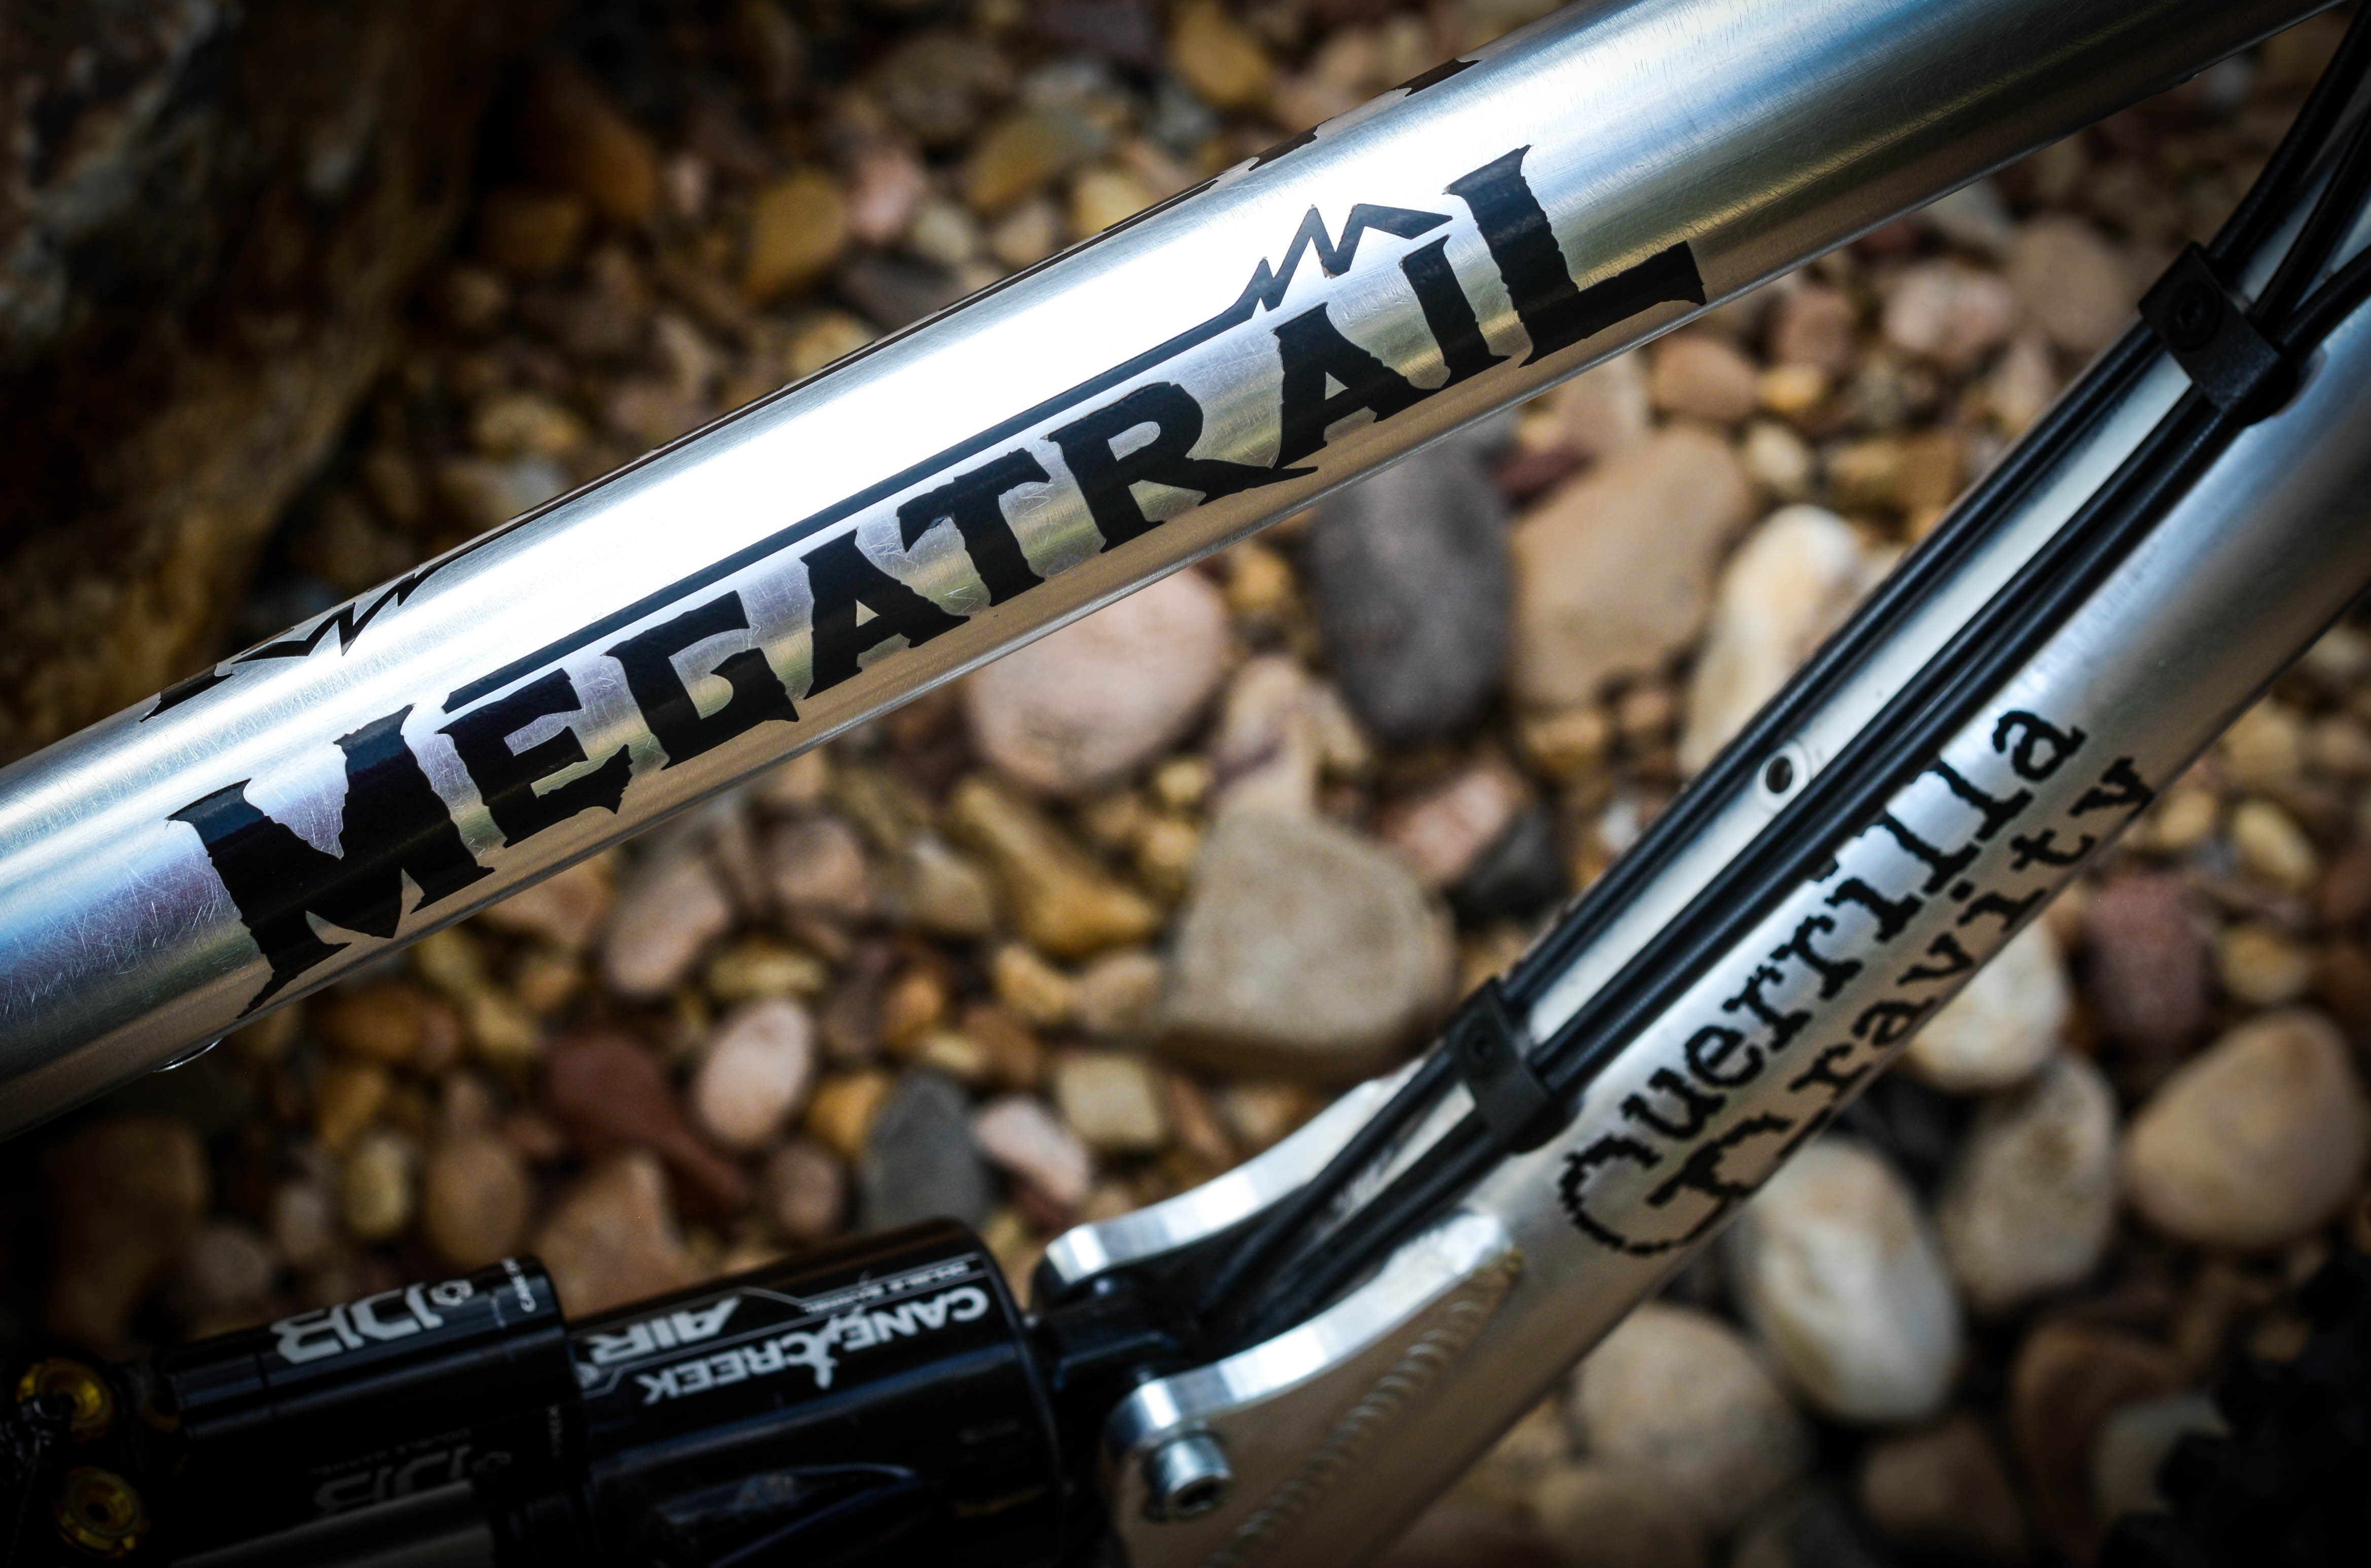 High quality aluminum and superior welds set this bike apart